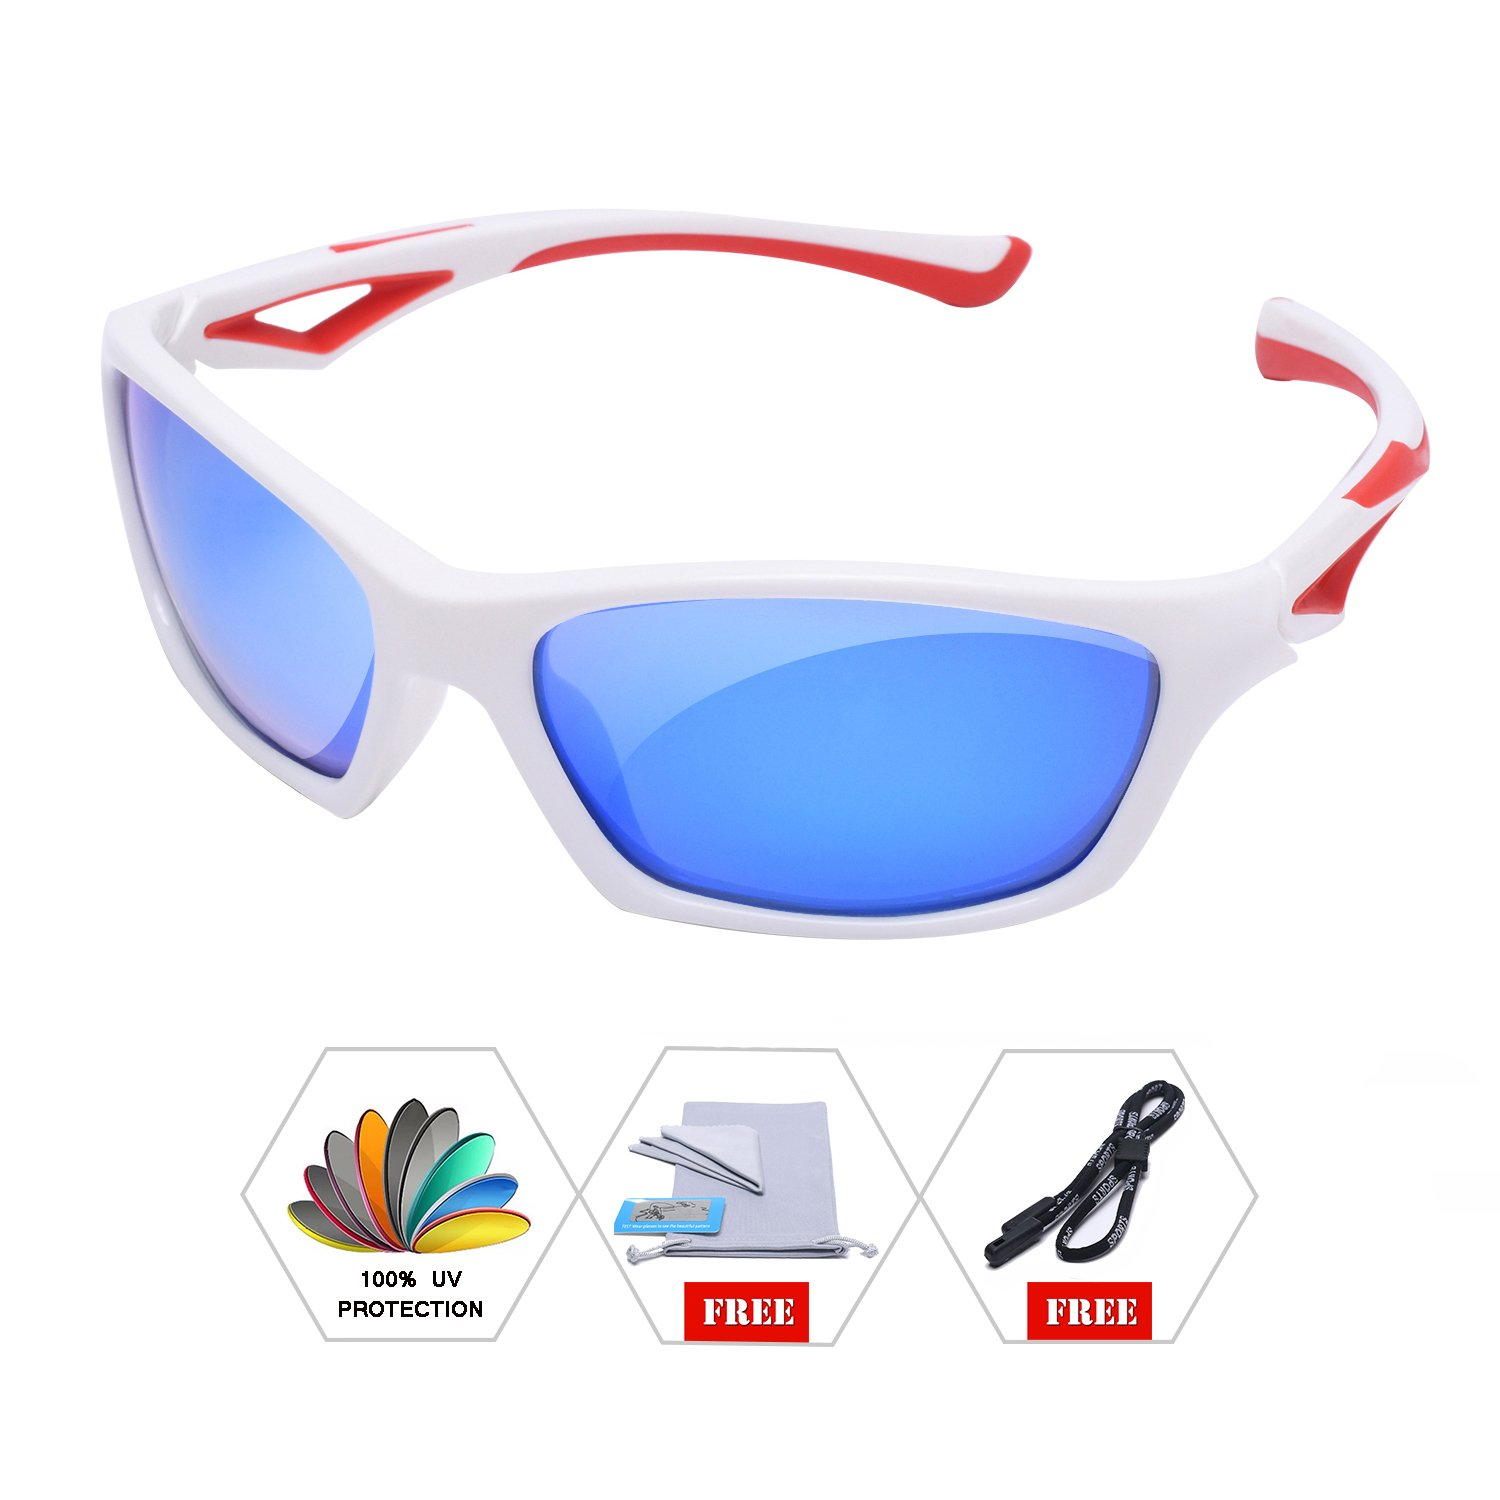 AODUOKE Sports Polarized Sunglasses For Kids Children Boys And Girls Shades With Strap TR90 Unbreakable Frame (White/Red | Blue Lens)